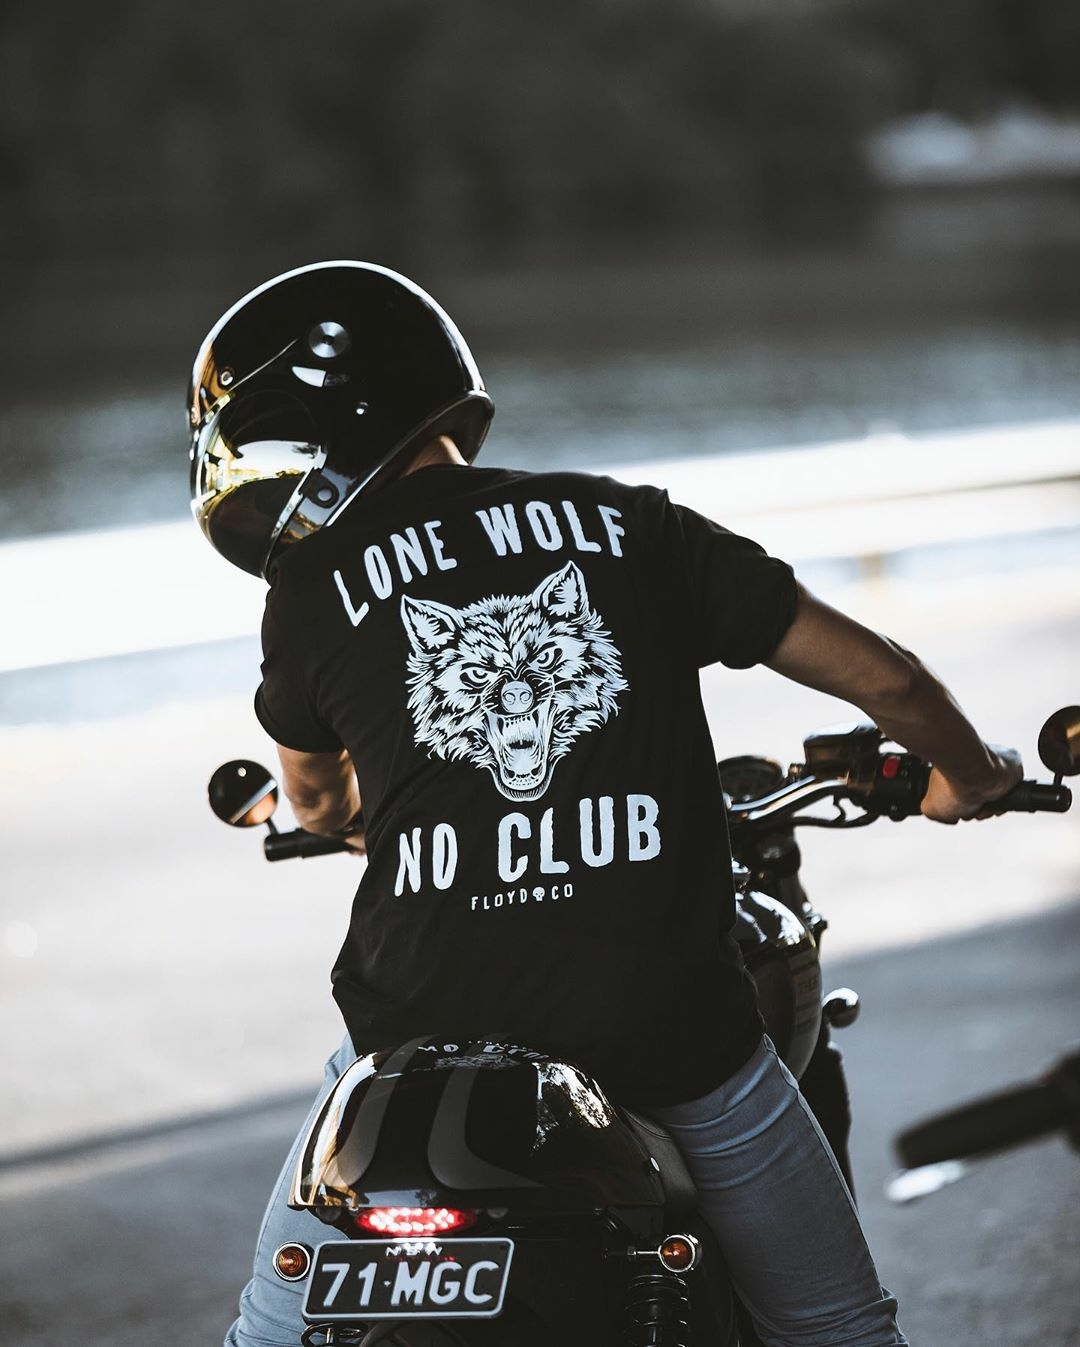 man riding motorcycle wearing lone wold no club t shirt